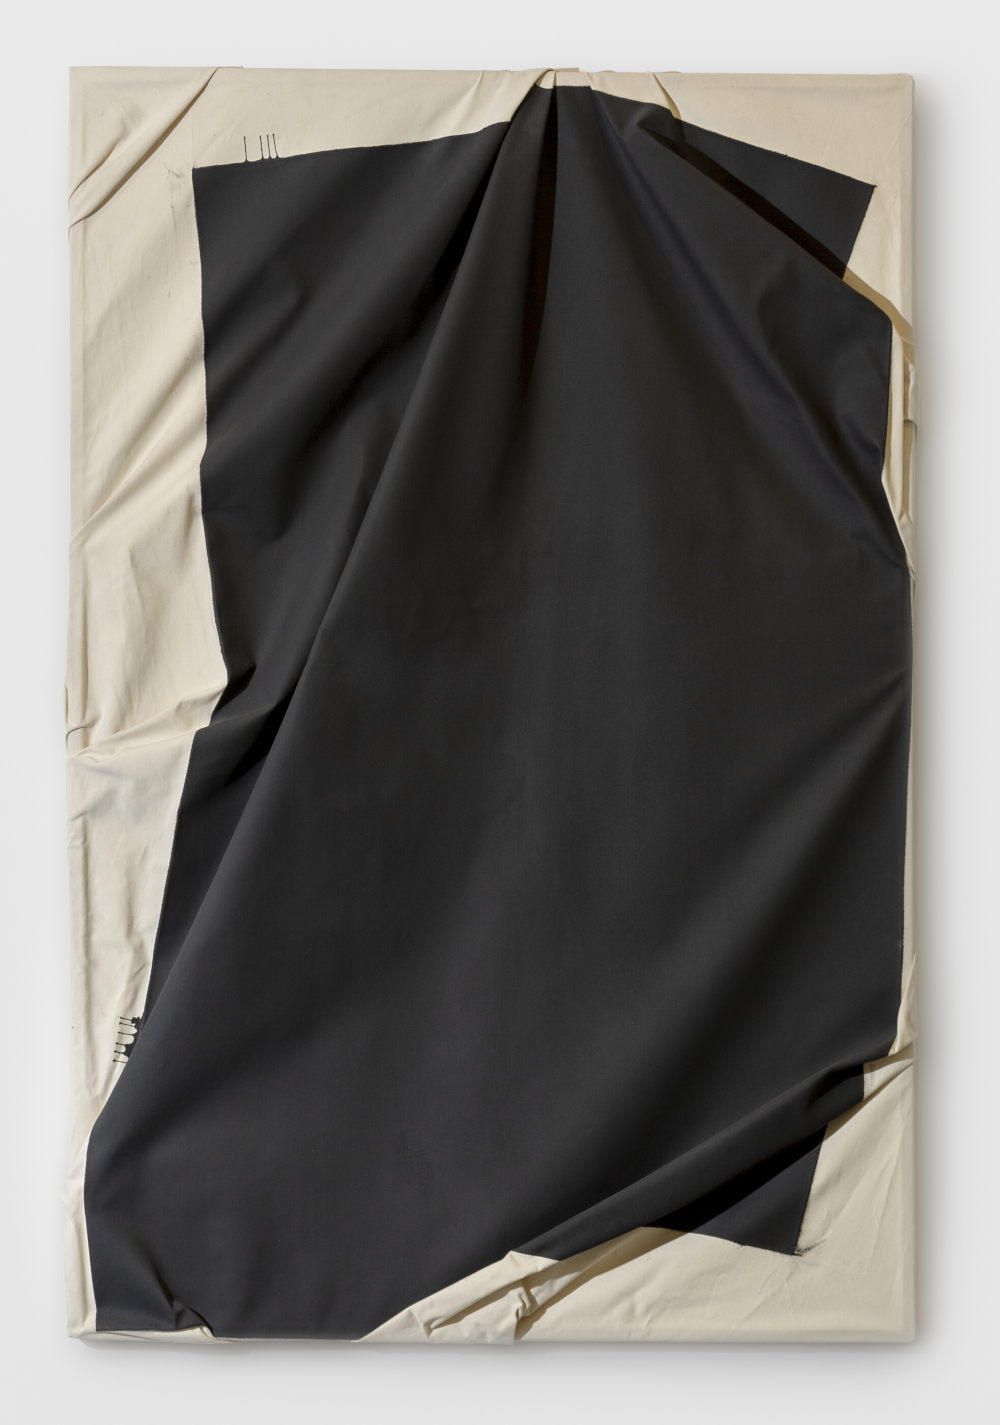 Steven Parrino, China de Sade, 1987. Acrylic on canvas 70 7/8 x 55 1/8 inches 180 x 140 cm. Signed, dated and titled S.Parrino 1987 China de Sade (on the stretcher); stamped STEVEN PARRINO (on the lower right)